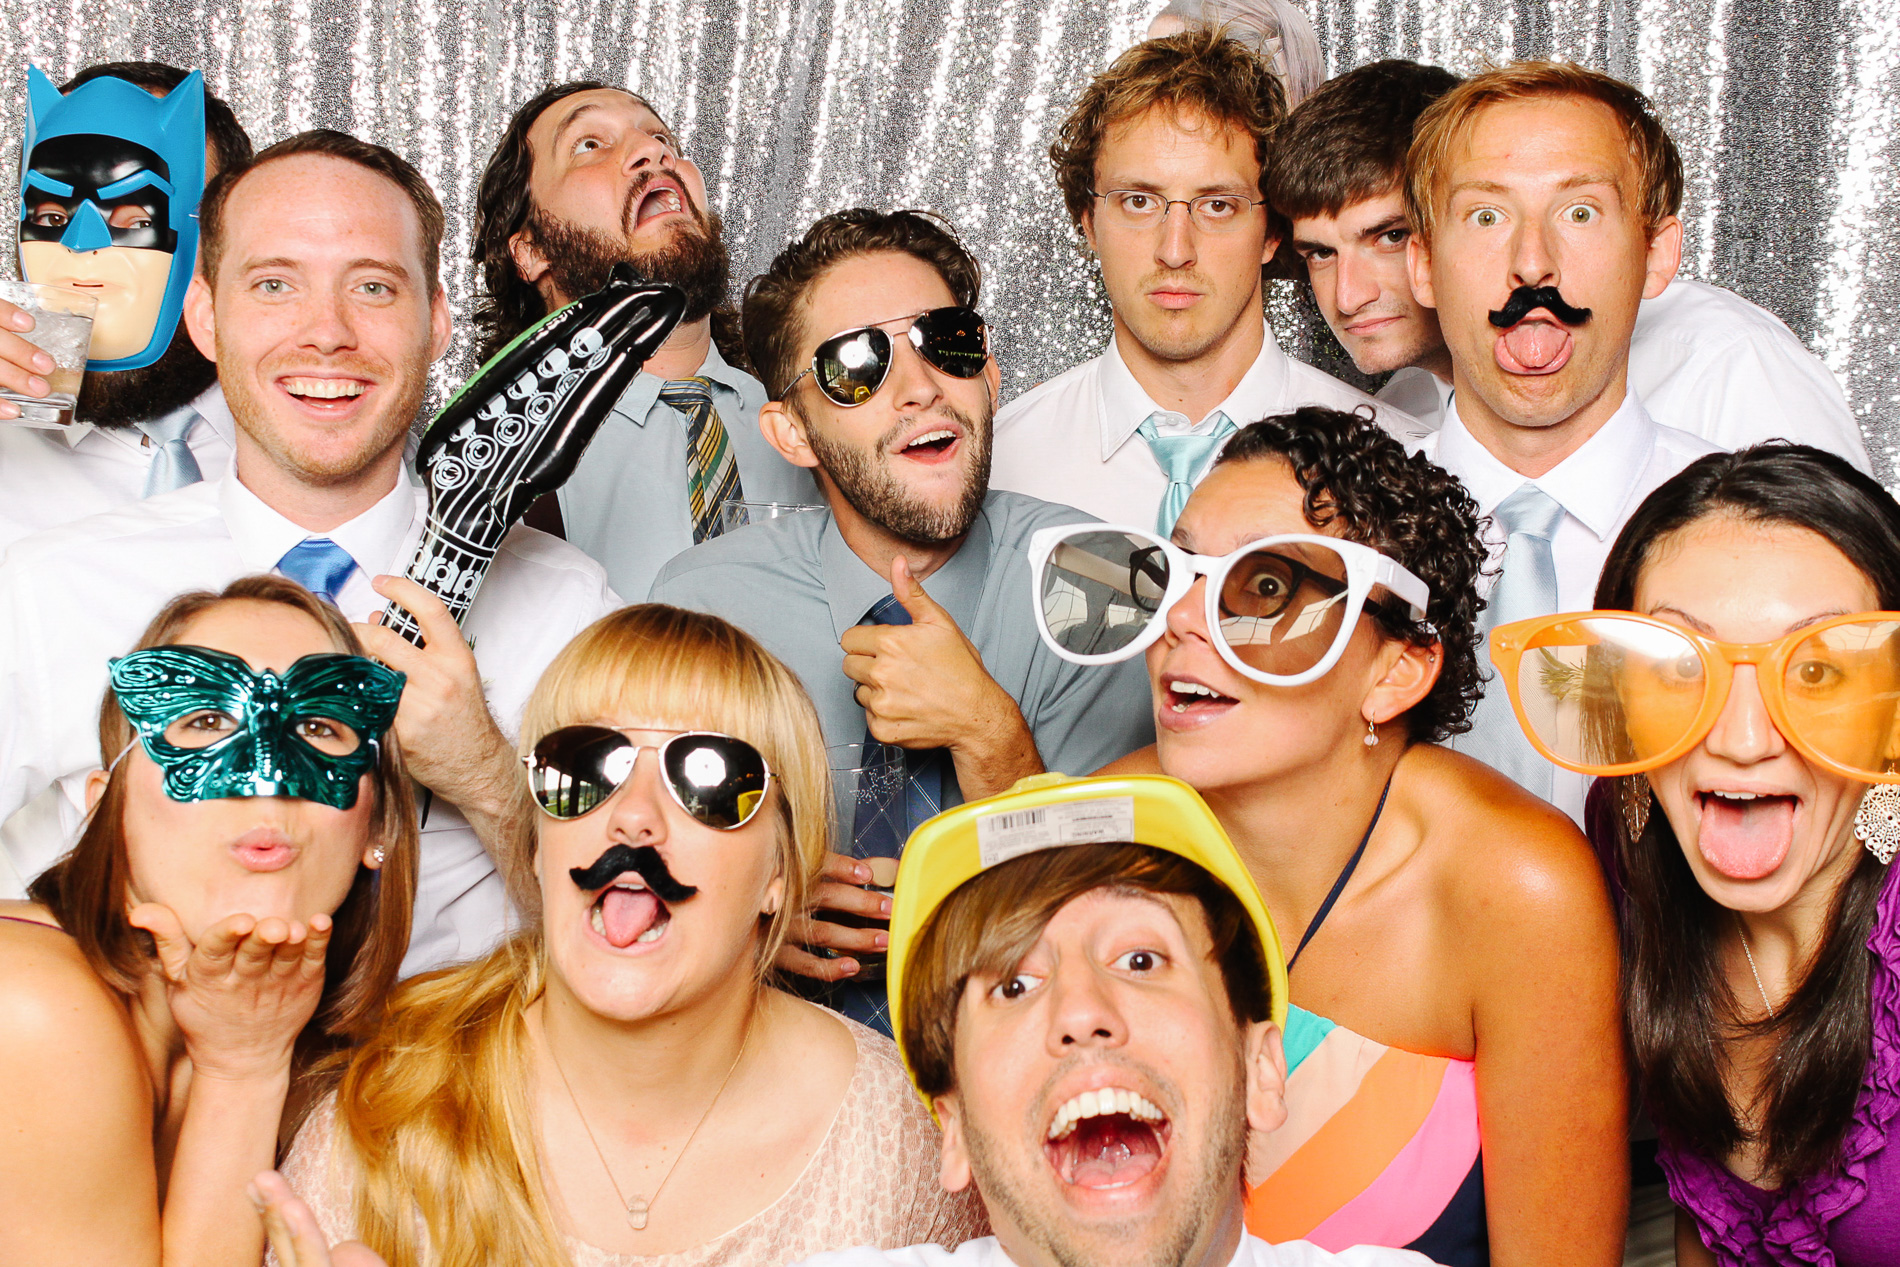 grin-and-bear-booth-photobooth-155952.jpg